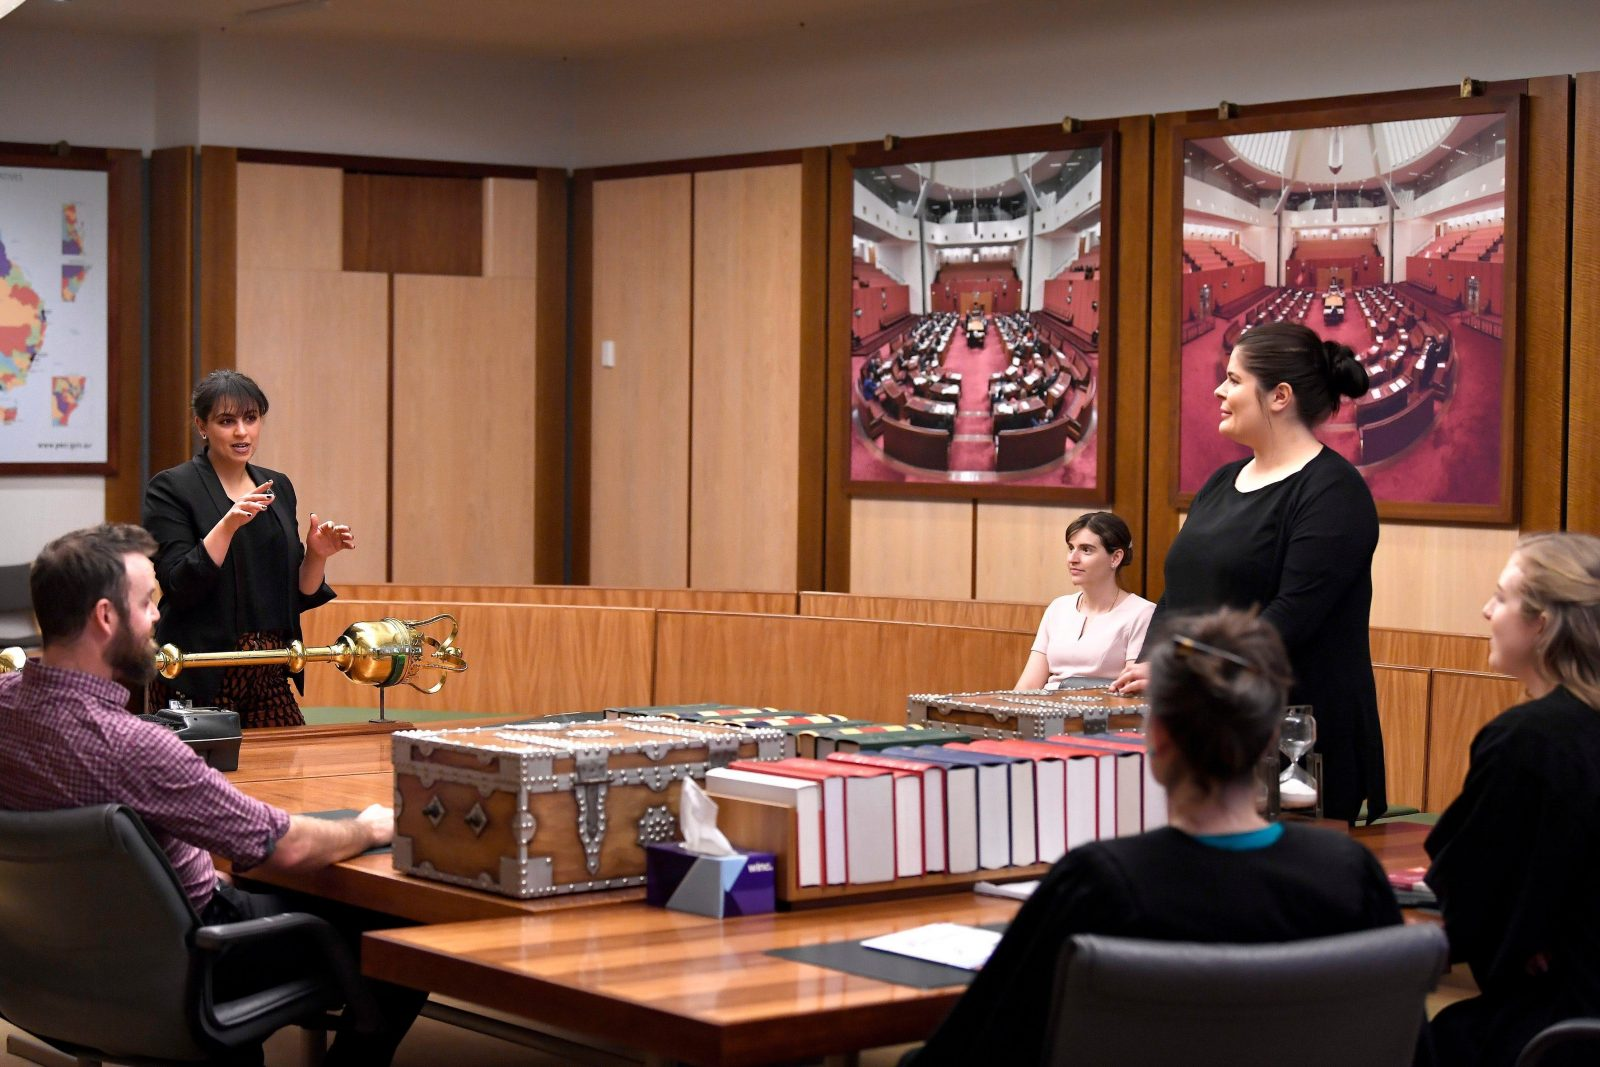 A Parliamentary Educator addresses a group sat at a table. A woman stands as the Prime Minister.